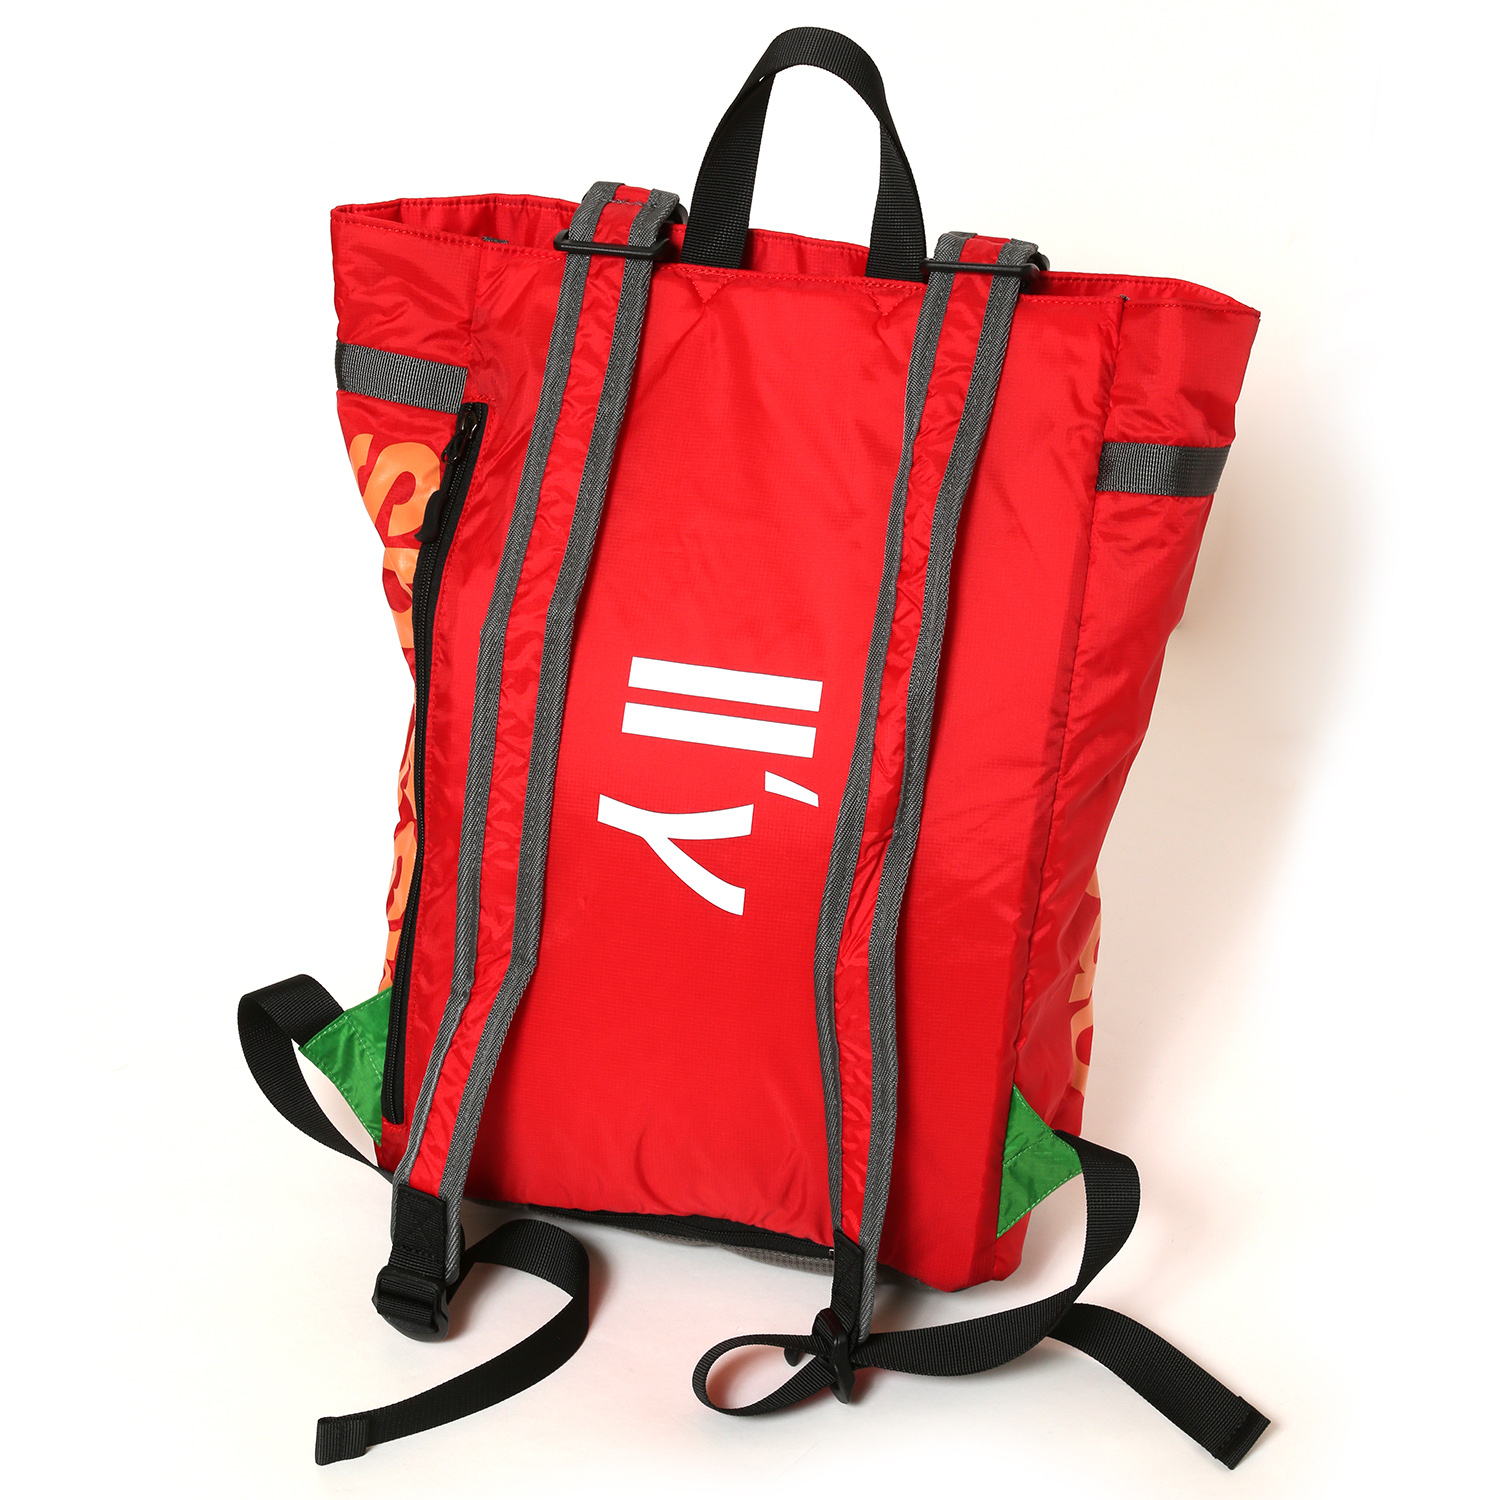 EVANGELION ABOVE AIR RUCK SACK by FIRE FIRST (EVA-02γ MODEL)